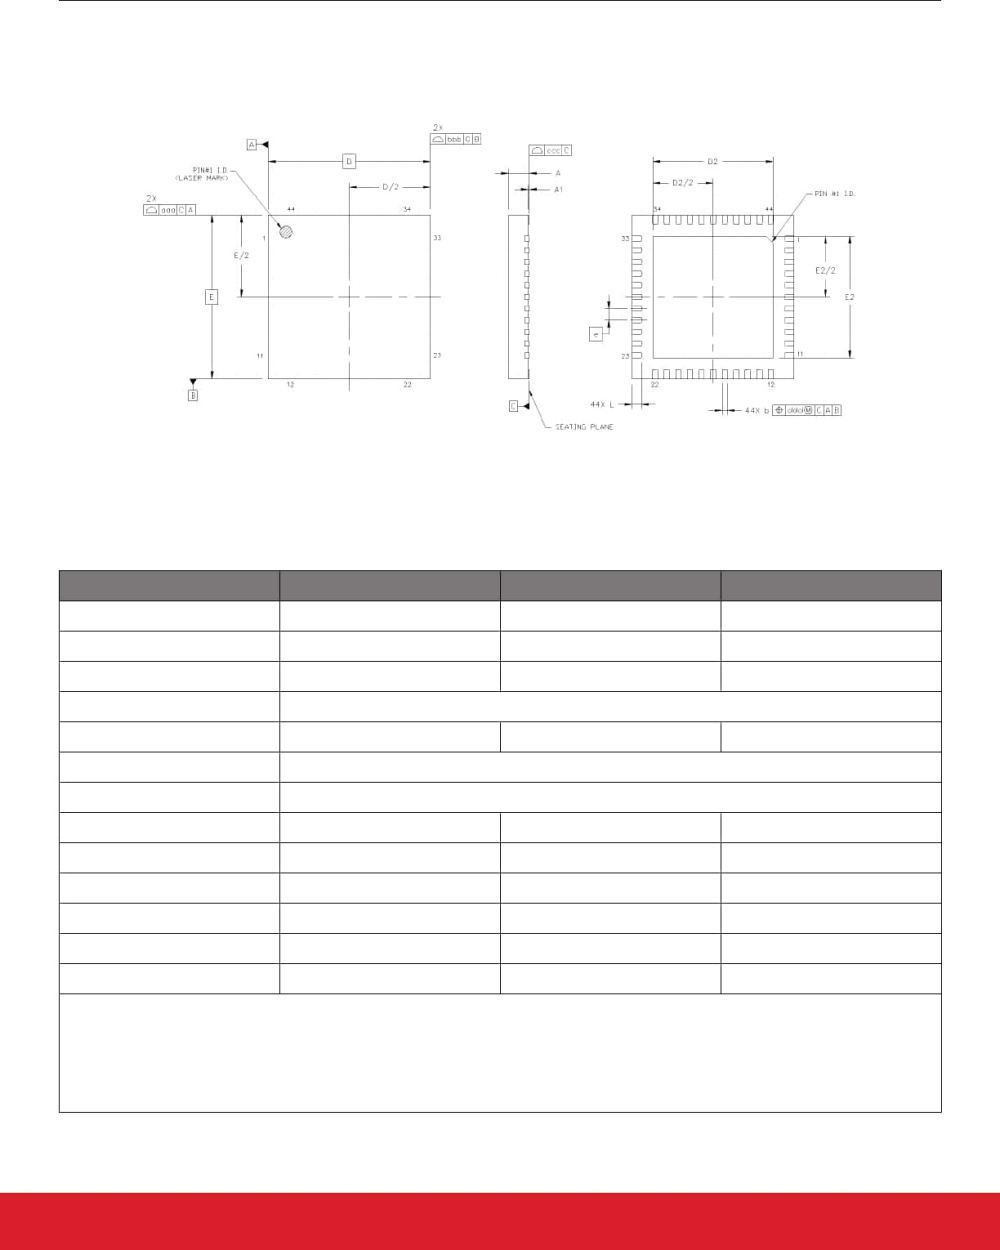 medium resolution of 10 2 si5340 7x7 mm 44 qfn package diagram